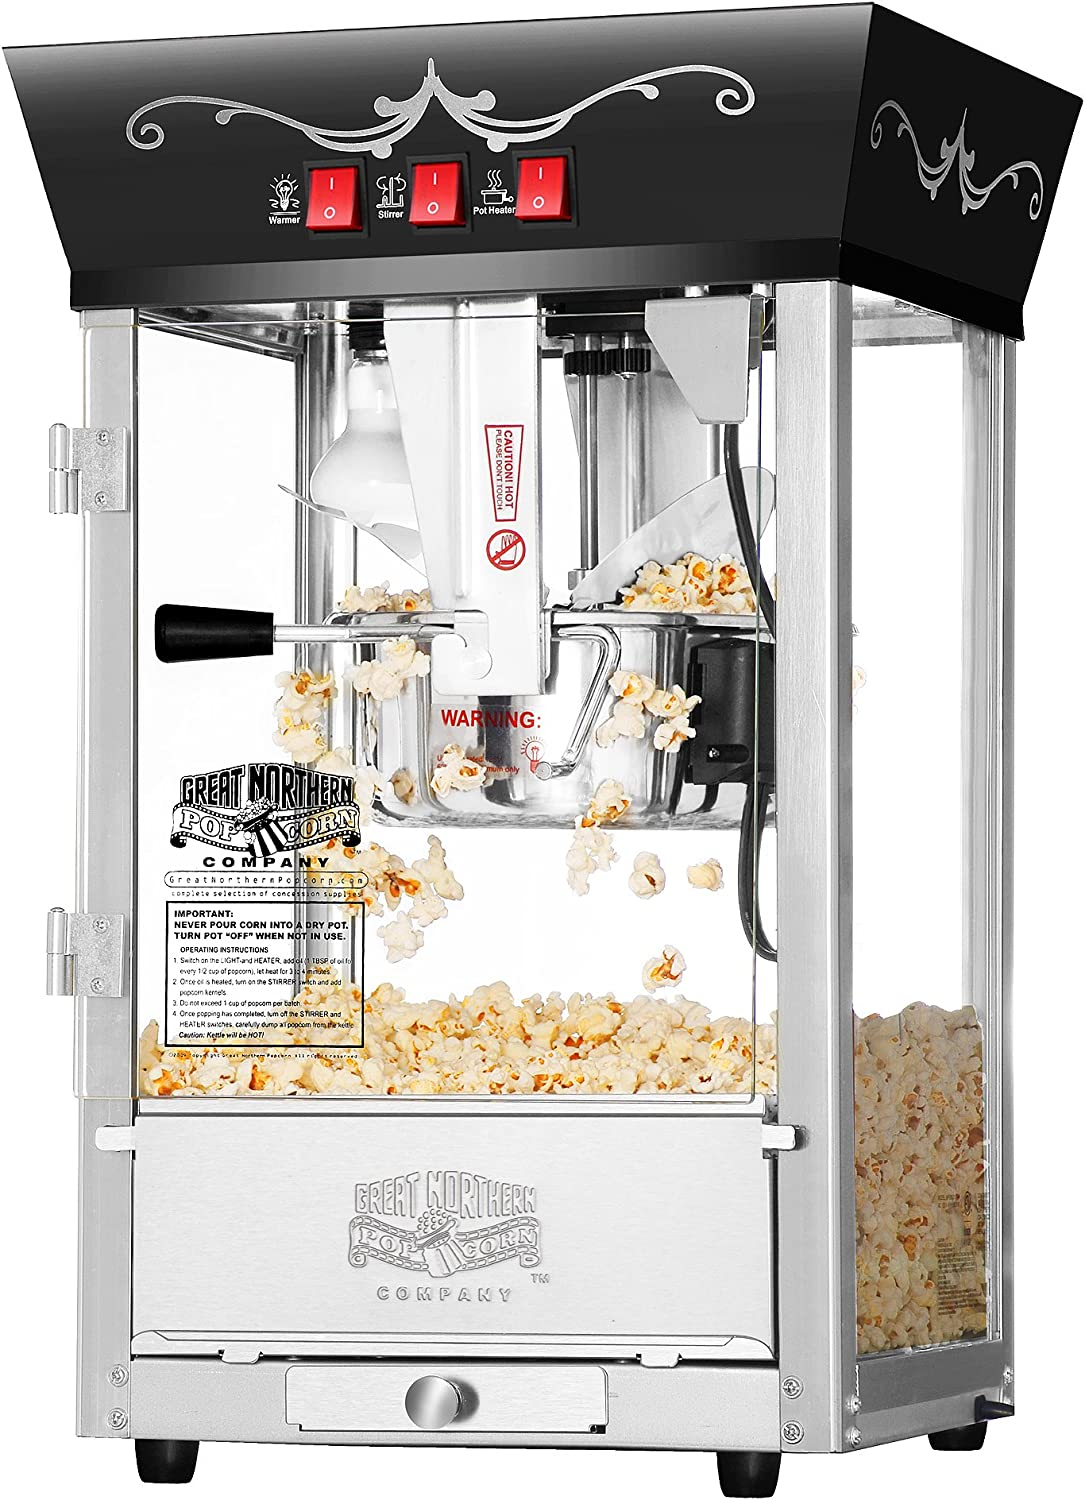 6092 Great Northern Popcorn Black Antique Style Popcorn Popper Machine, 8 Ounce